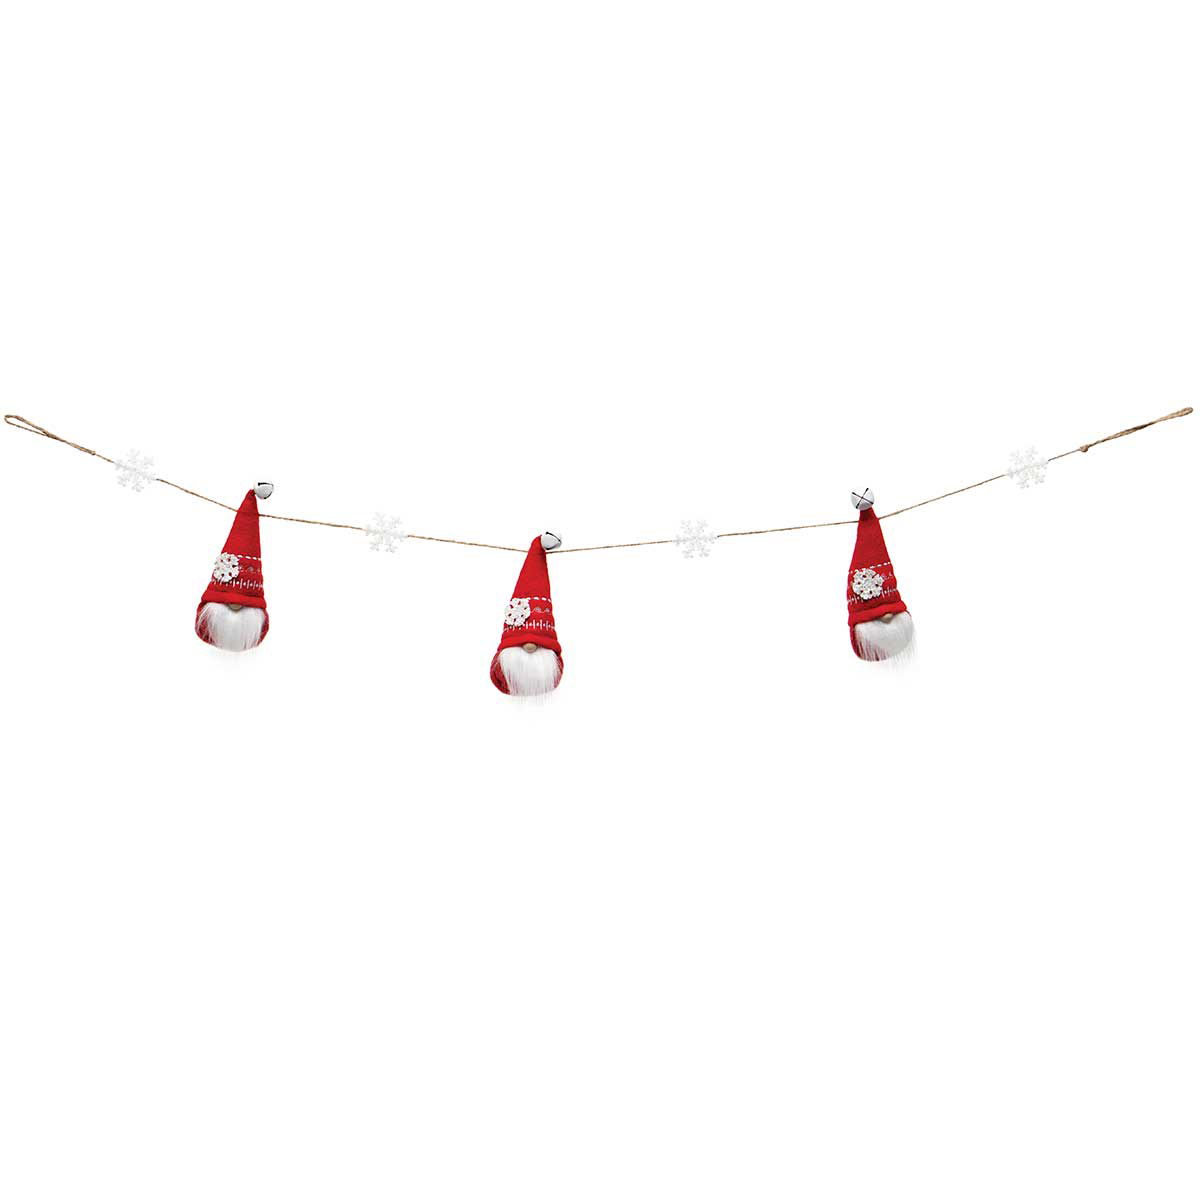 SNOWFLAKE GNOME X3 GARLAND RED WITH JINGLE BELL, WOOD